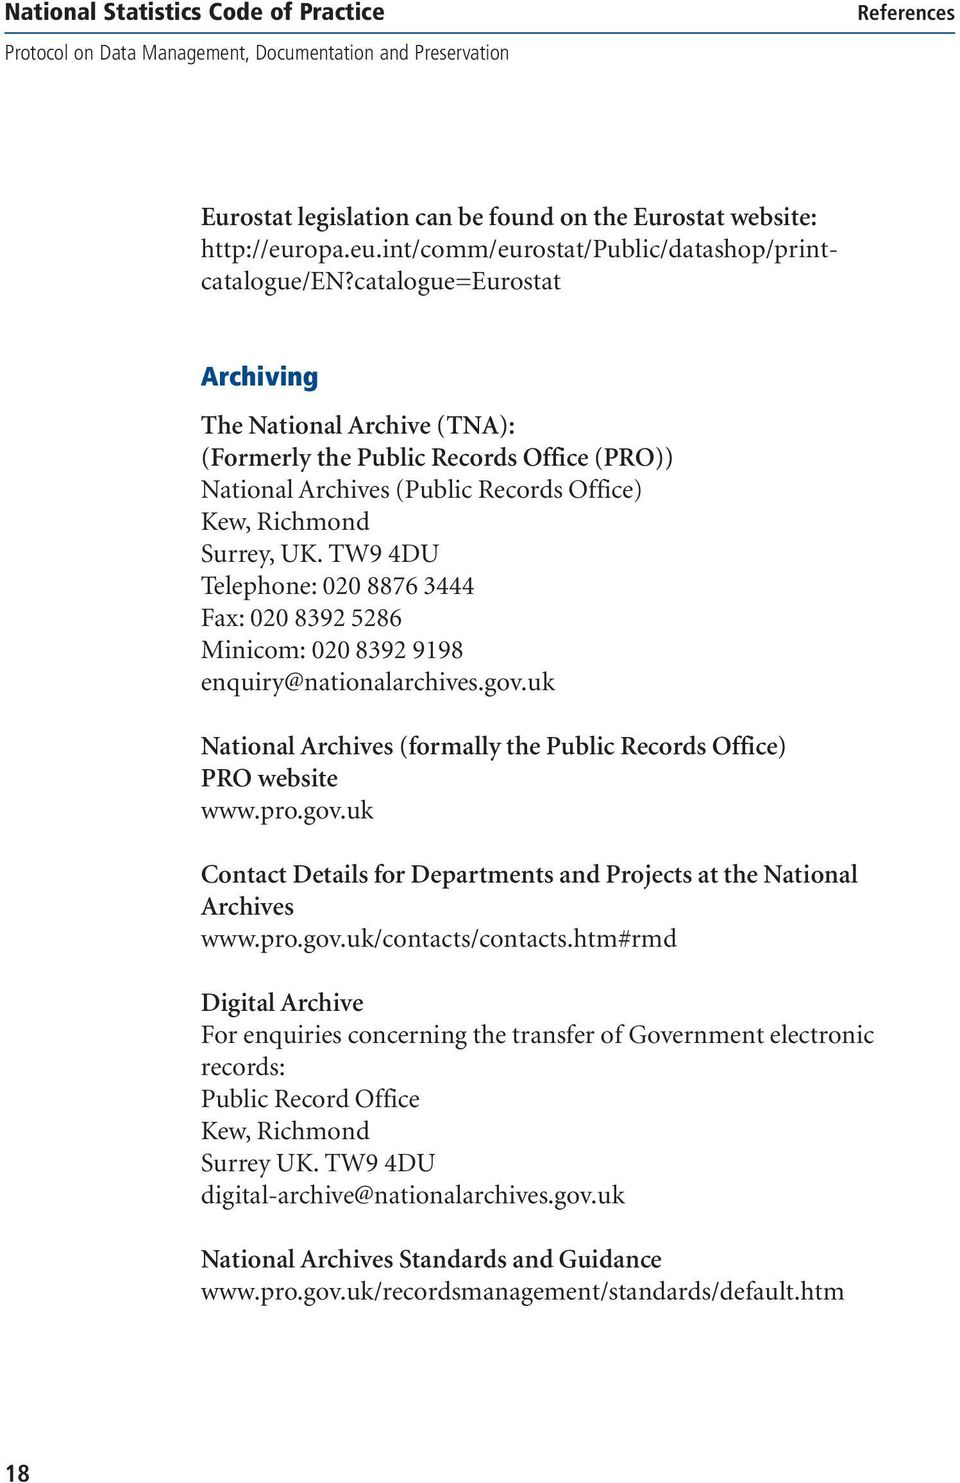 TW9 4DU Telephone: 020 8876 3444 Fax: 020 8392 5286 Minicom: 020 8392 9198 enquiry@nationalarchives.gov.uk National Archives (formally the Public Records Office) PRO website www.pro.gov.uk Contact Details for Departments and Projects at the National Archives www.